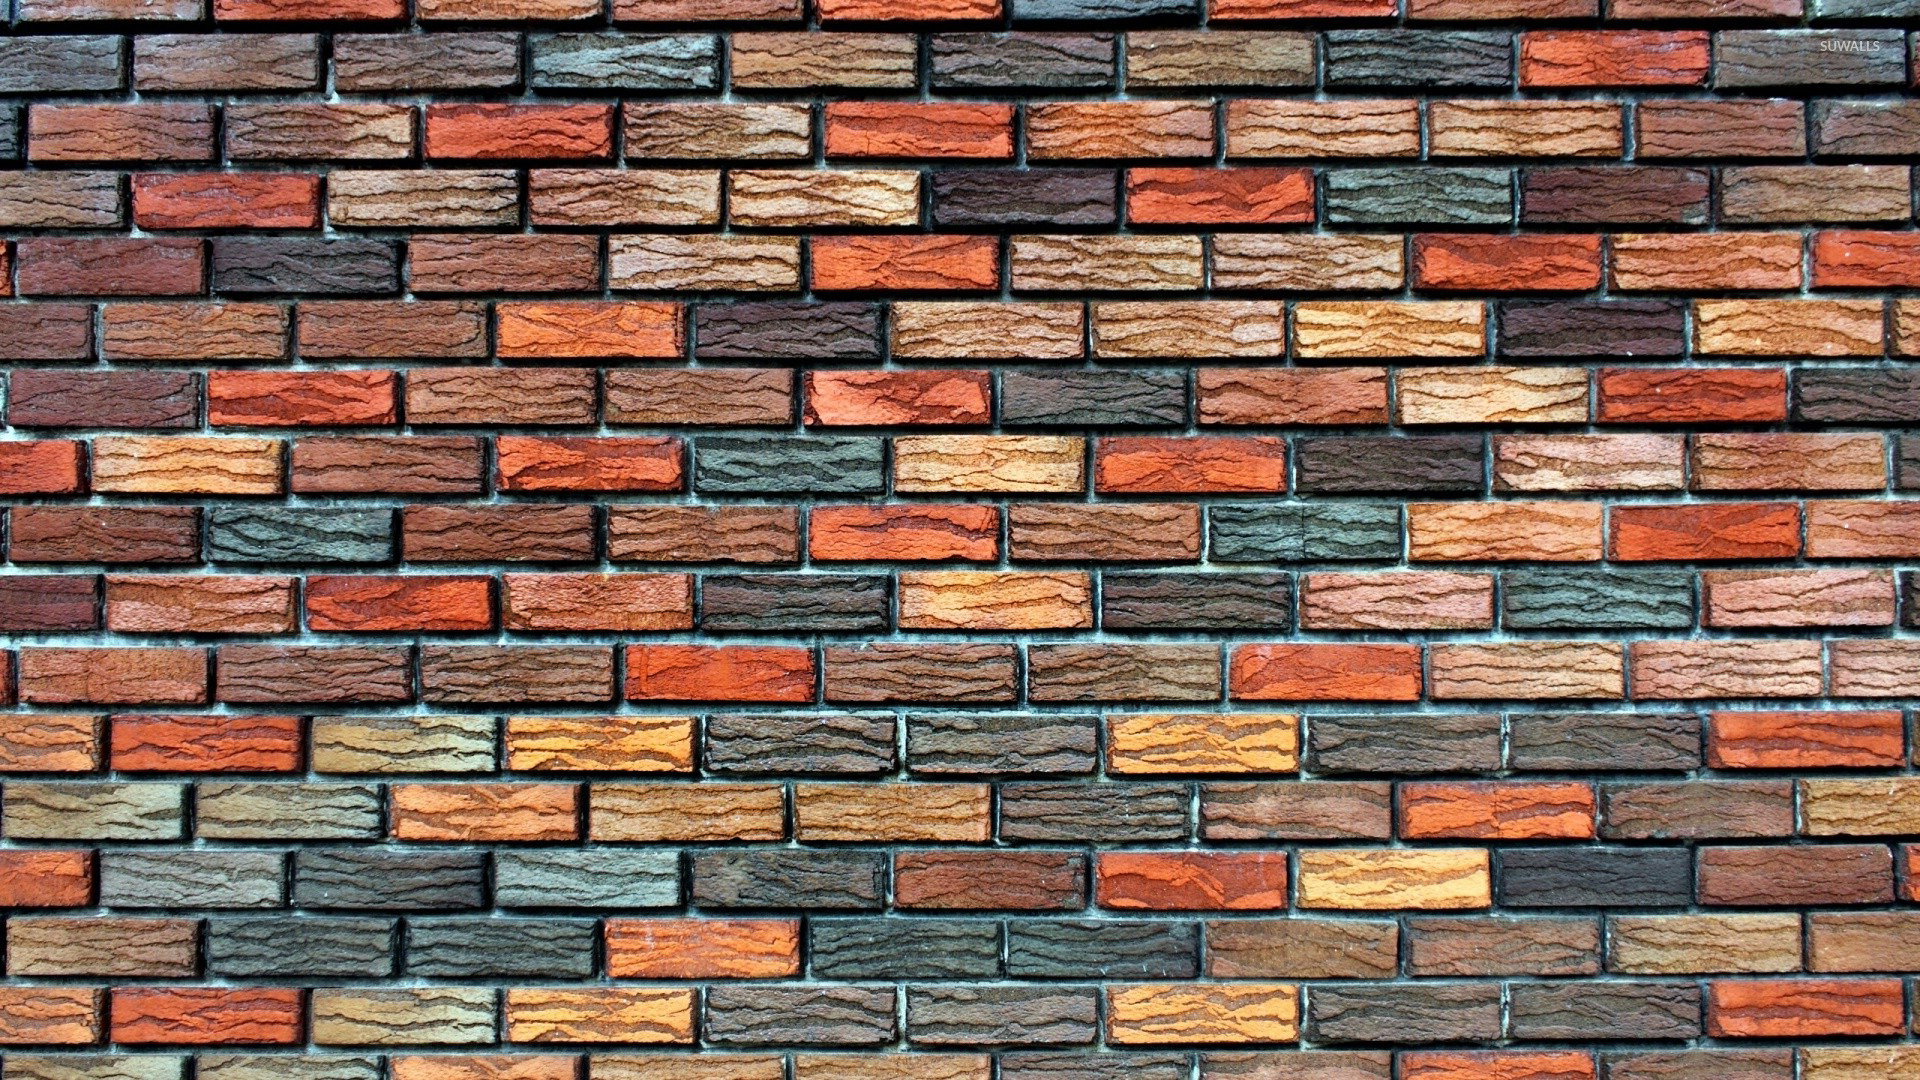 Brick wall wallpaper photography wallpapers 22360 for Wallpaper images for house walls